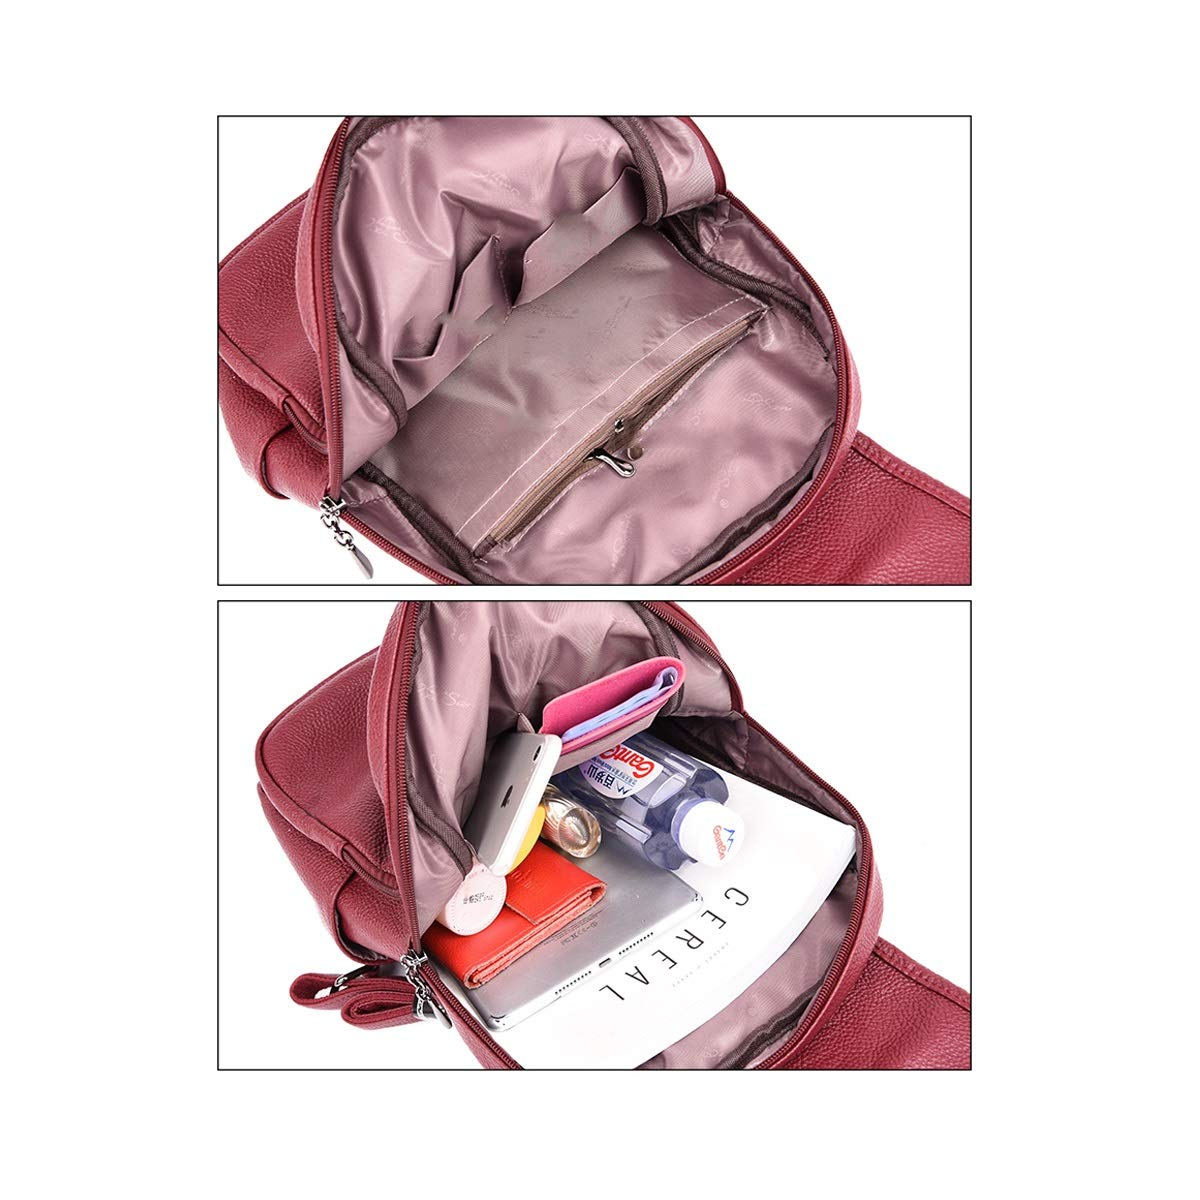 ZHICHUANG Girls Multipurpose Backpack for Everyday Travel//Outdoor//Travel//School//Work//Fashion//Leisure Practical and Simple PU Leather for Women /& Men Black//Blue//Gray//Red